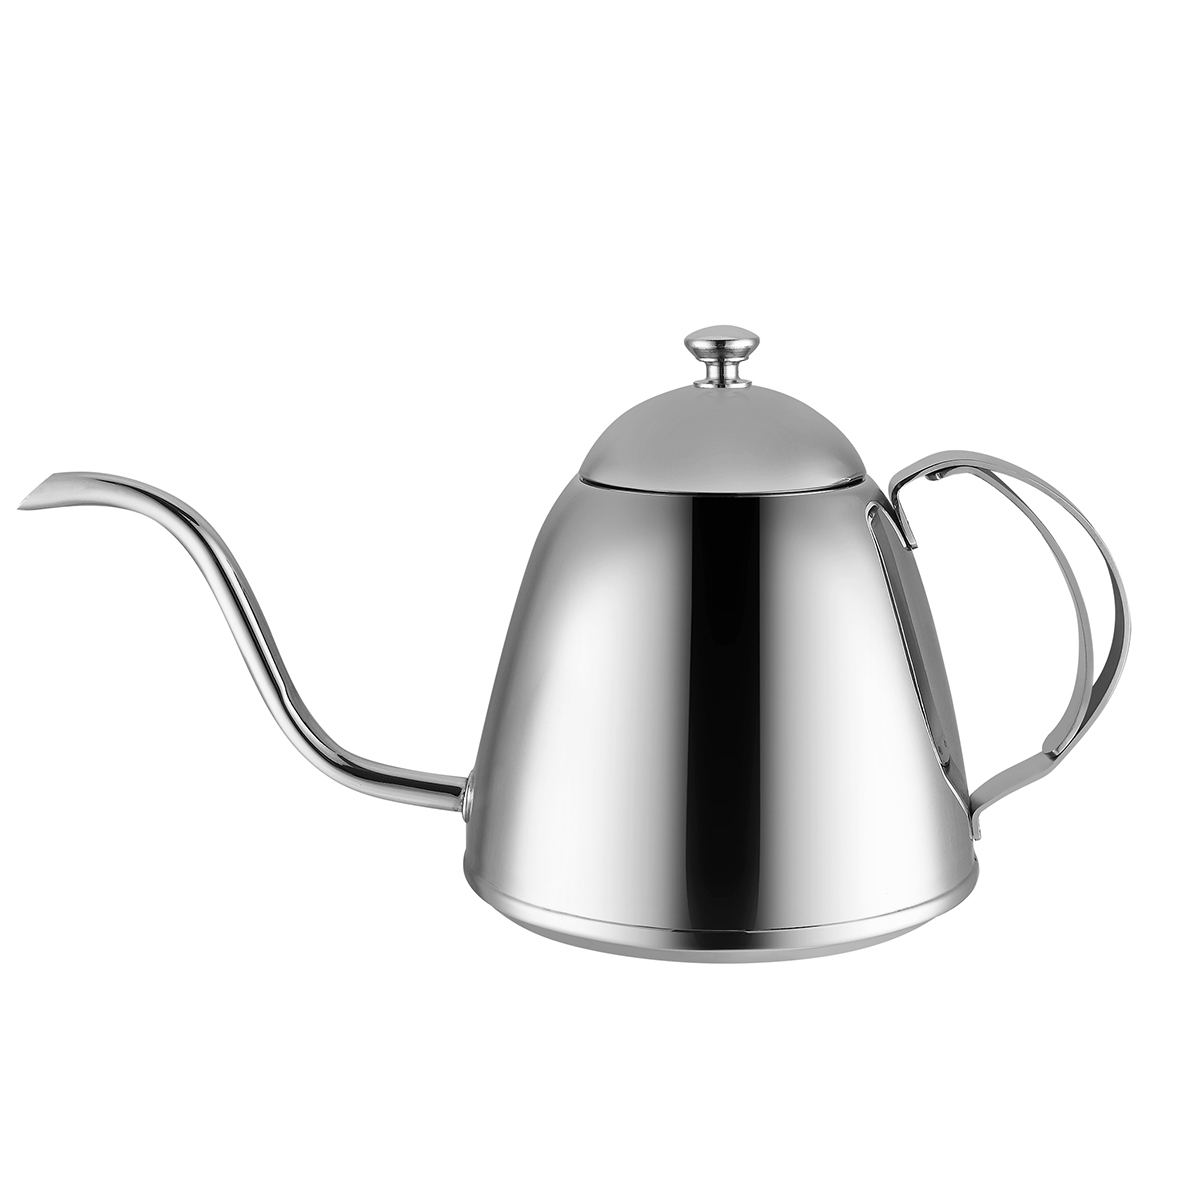 900ml Pour Over Stainless Steel Coffee Kettle with Stainless Steel Handle